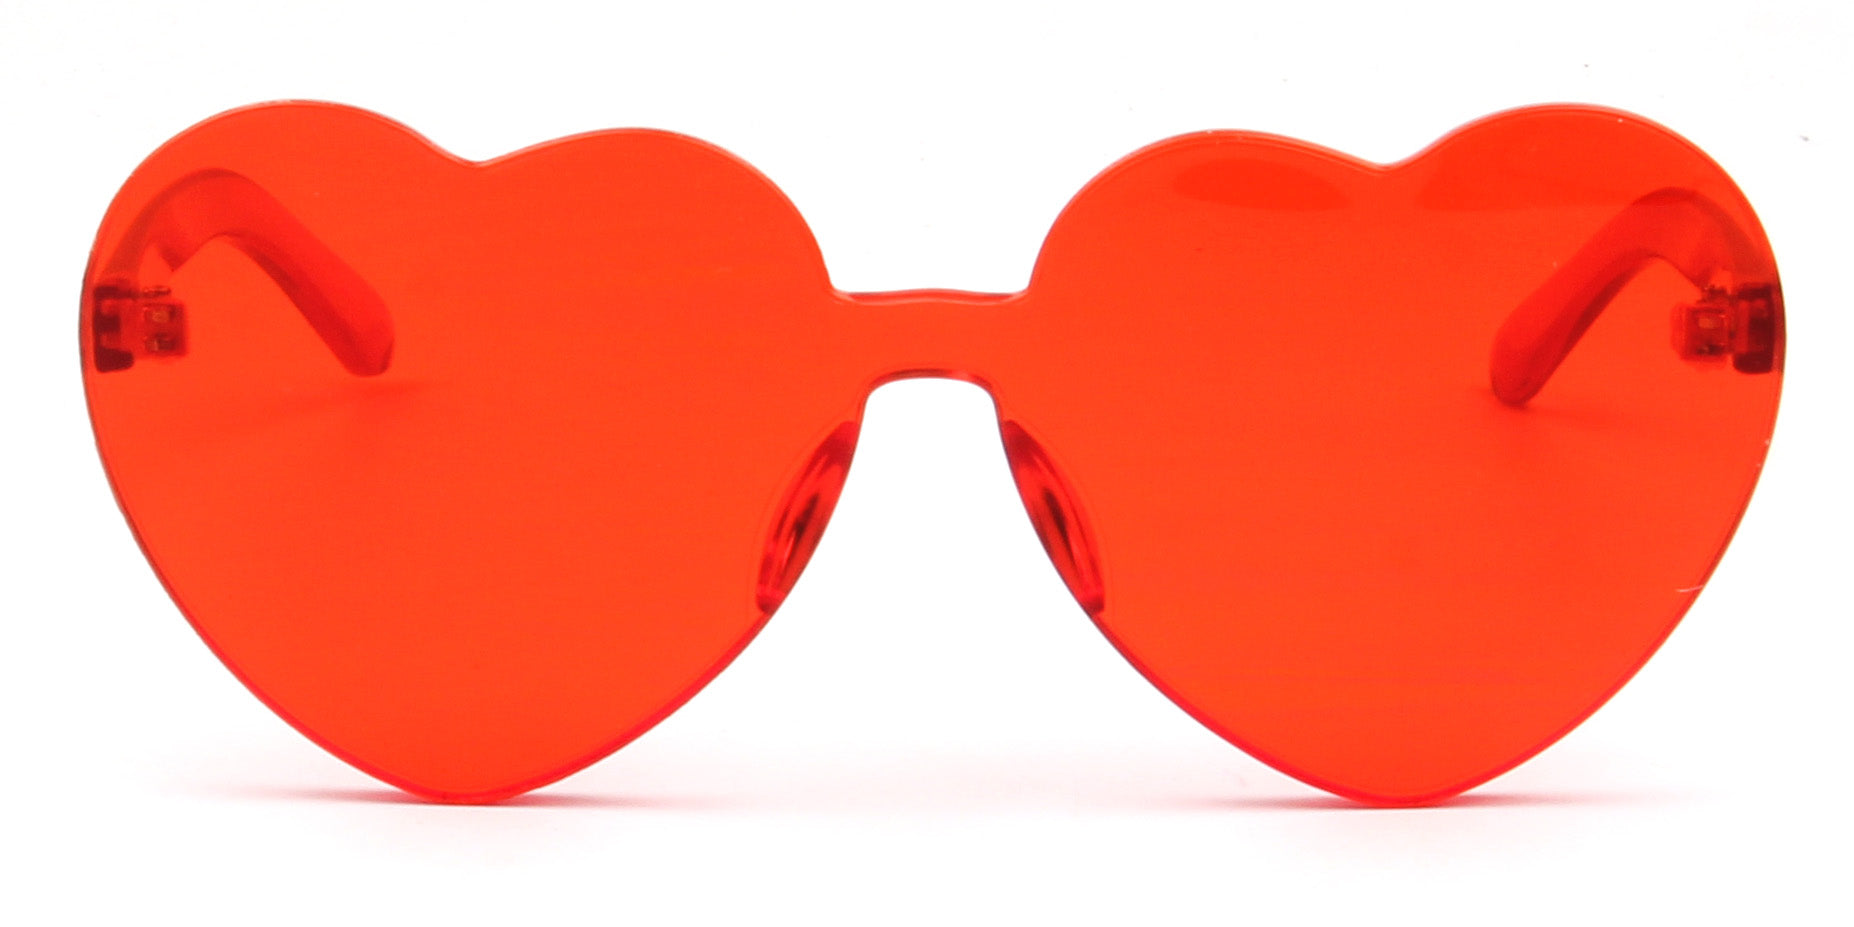 S2058 - Women Heart Shape Sunglasses - Wholesale Sunglasses and glasses